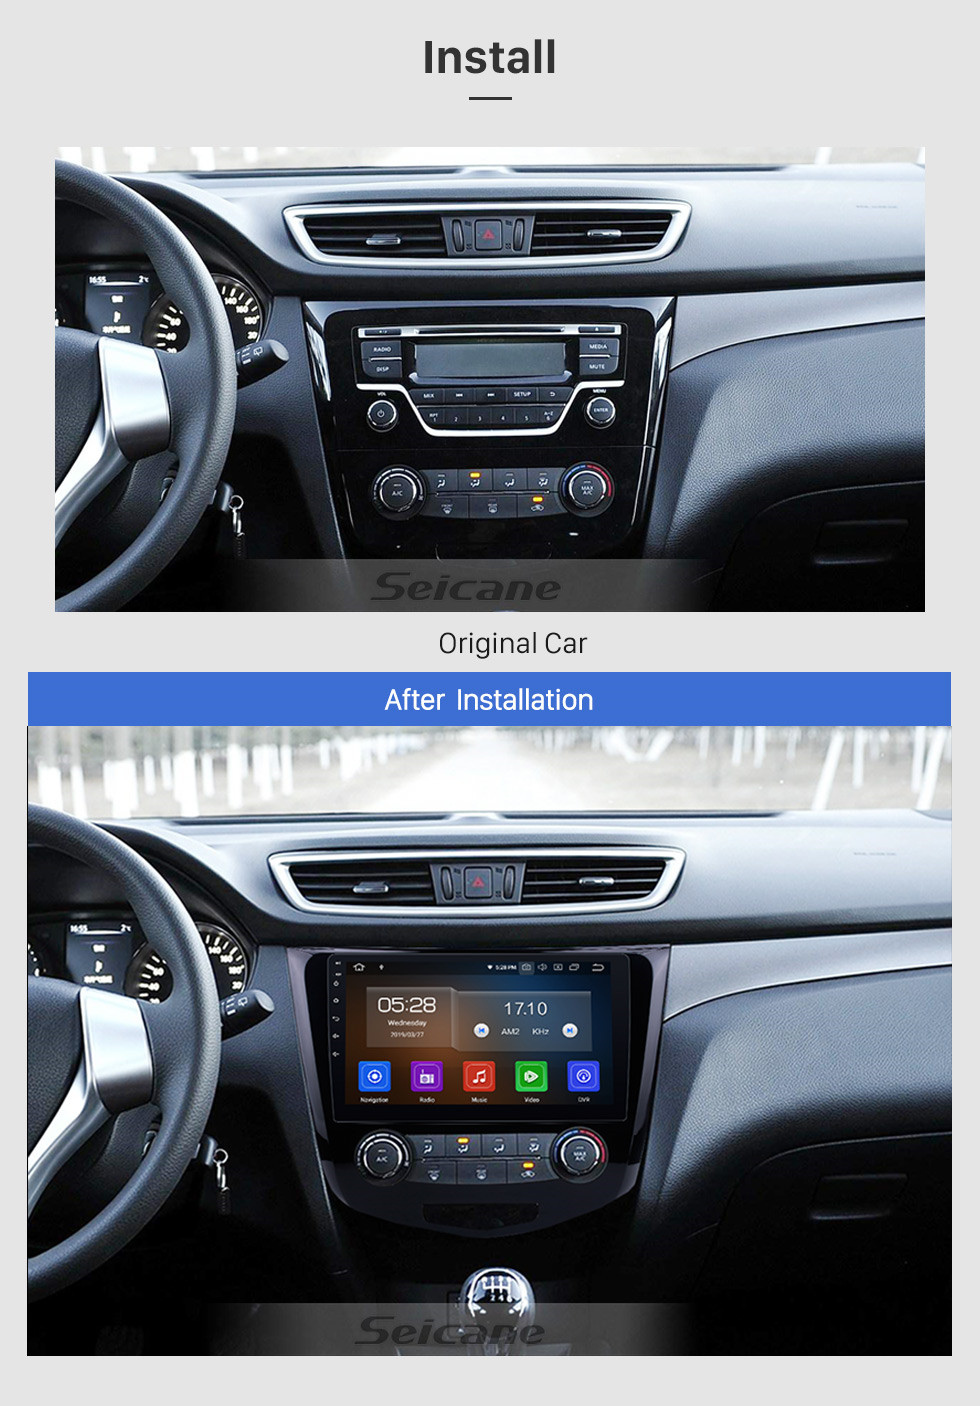 Seicane 10.1 inch For 2014 2015 2016 Nissan Qashqai Android 10.0 Radio GPS Navigation System with Bluetooth TPMS USB AUX 3G/4G WIFI Steering Wheel Control